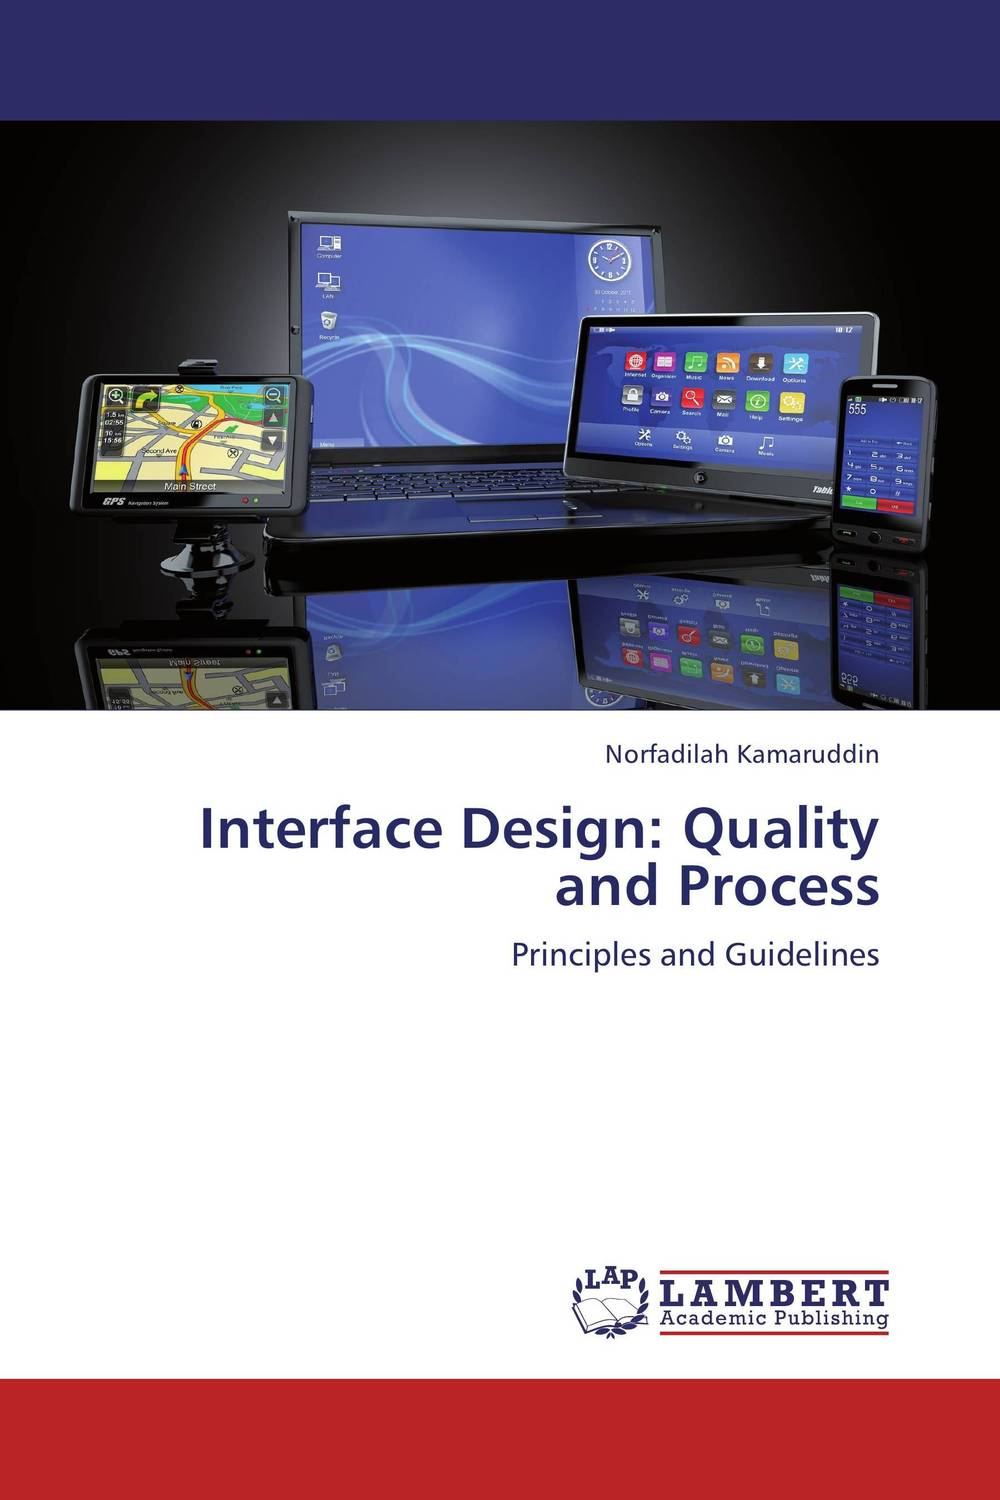 Interface Design: Quality and Process монитор 19 hp v196 черный tft tn 1366x768 200 cd m^2 5 ms dvi vga